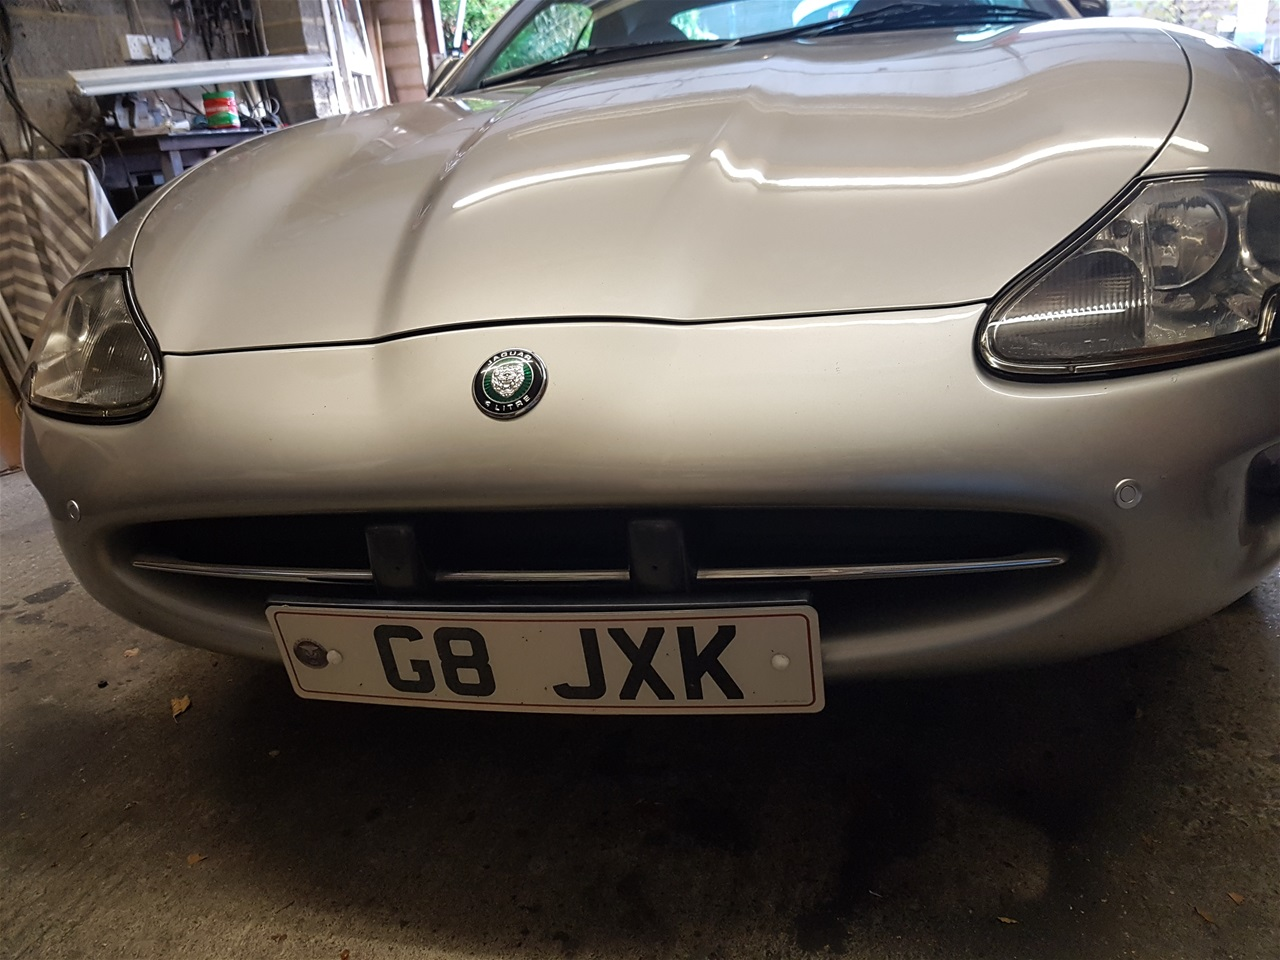 Jaguar XK8 front colour coded parking sensors